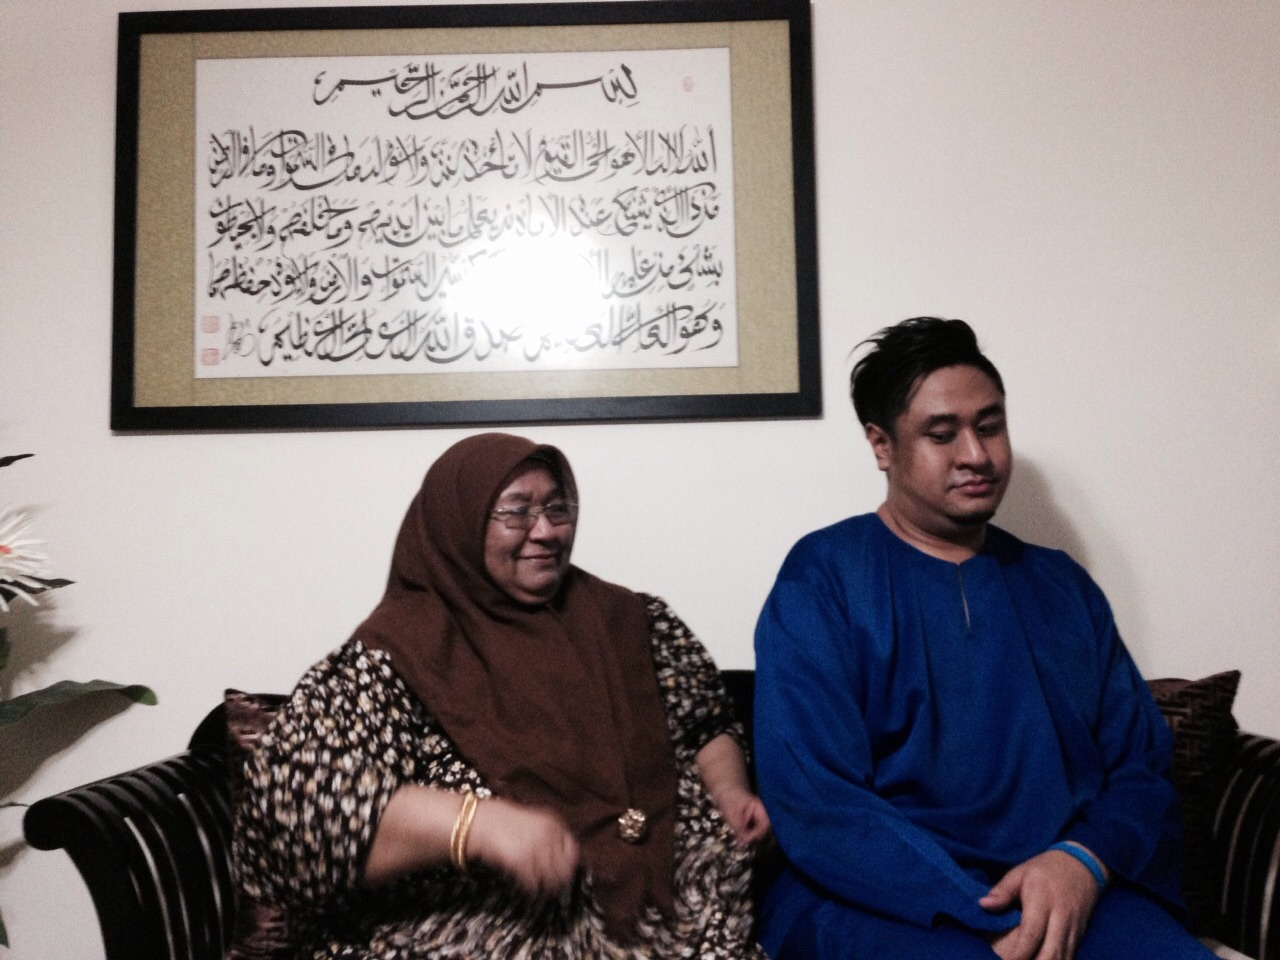 Ezzam and his mother.